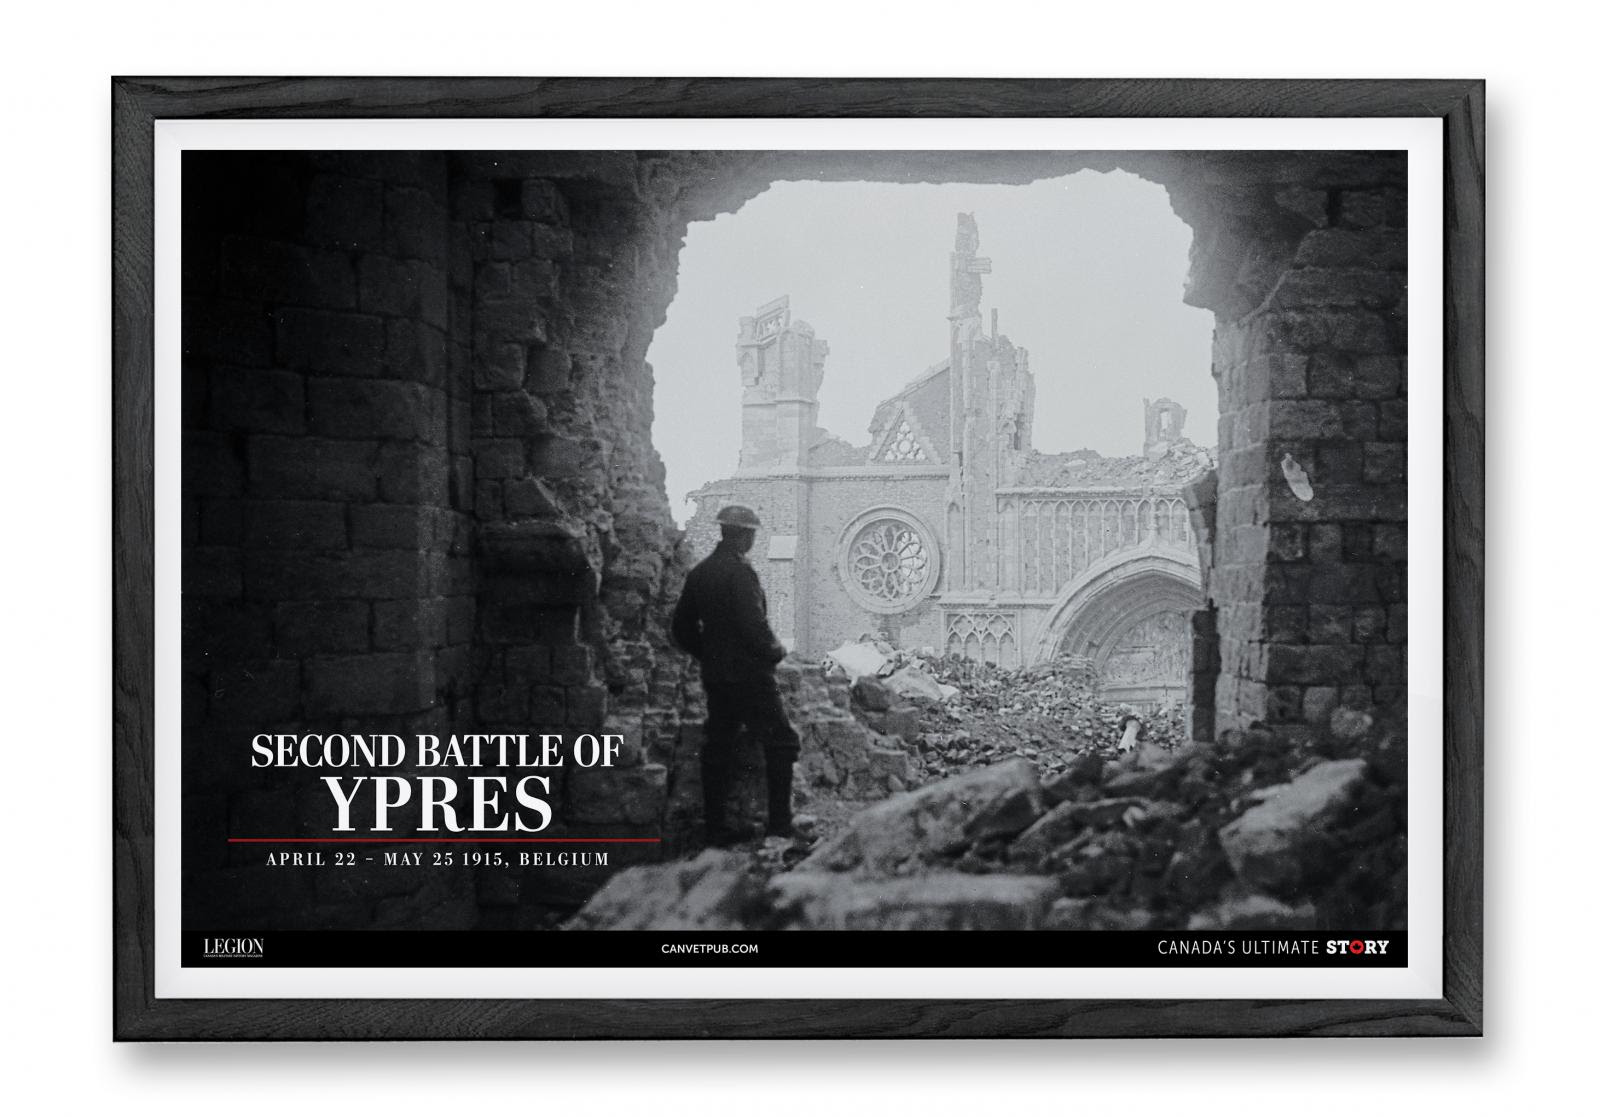 Battle of Ypres!